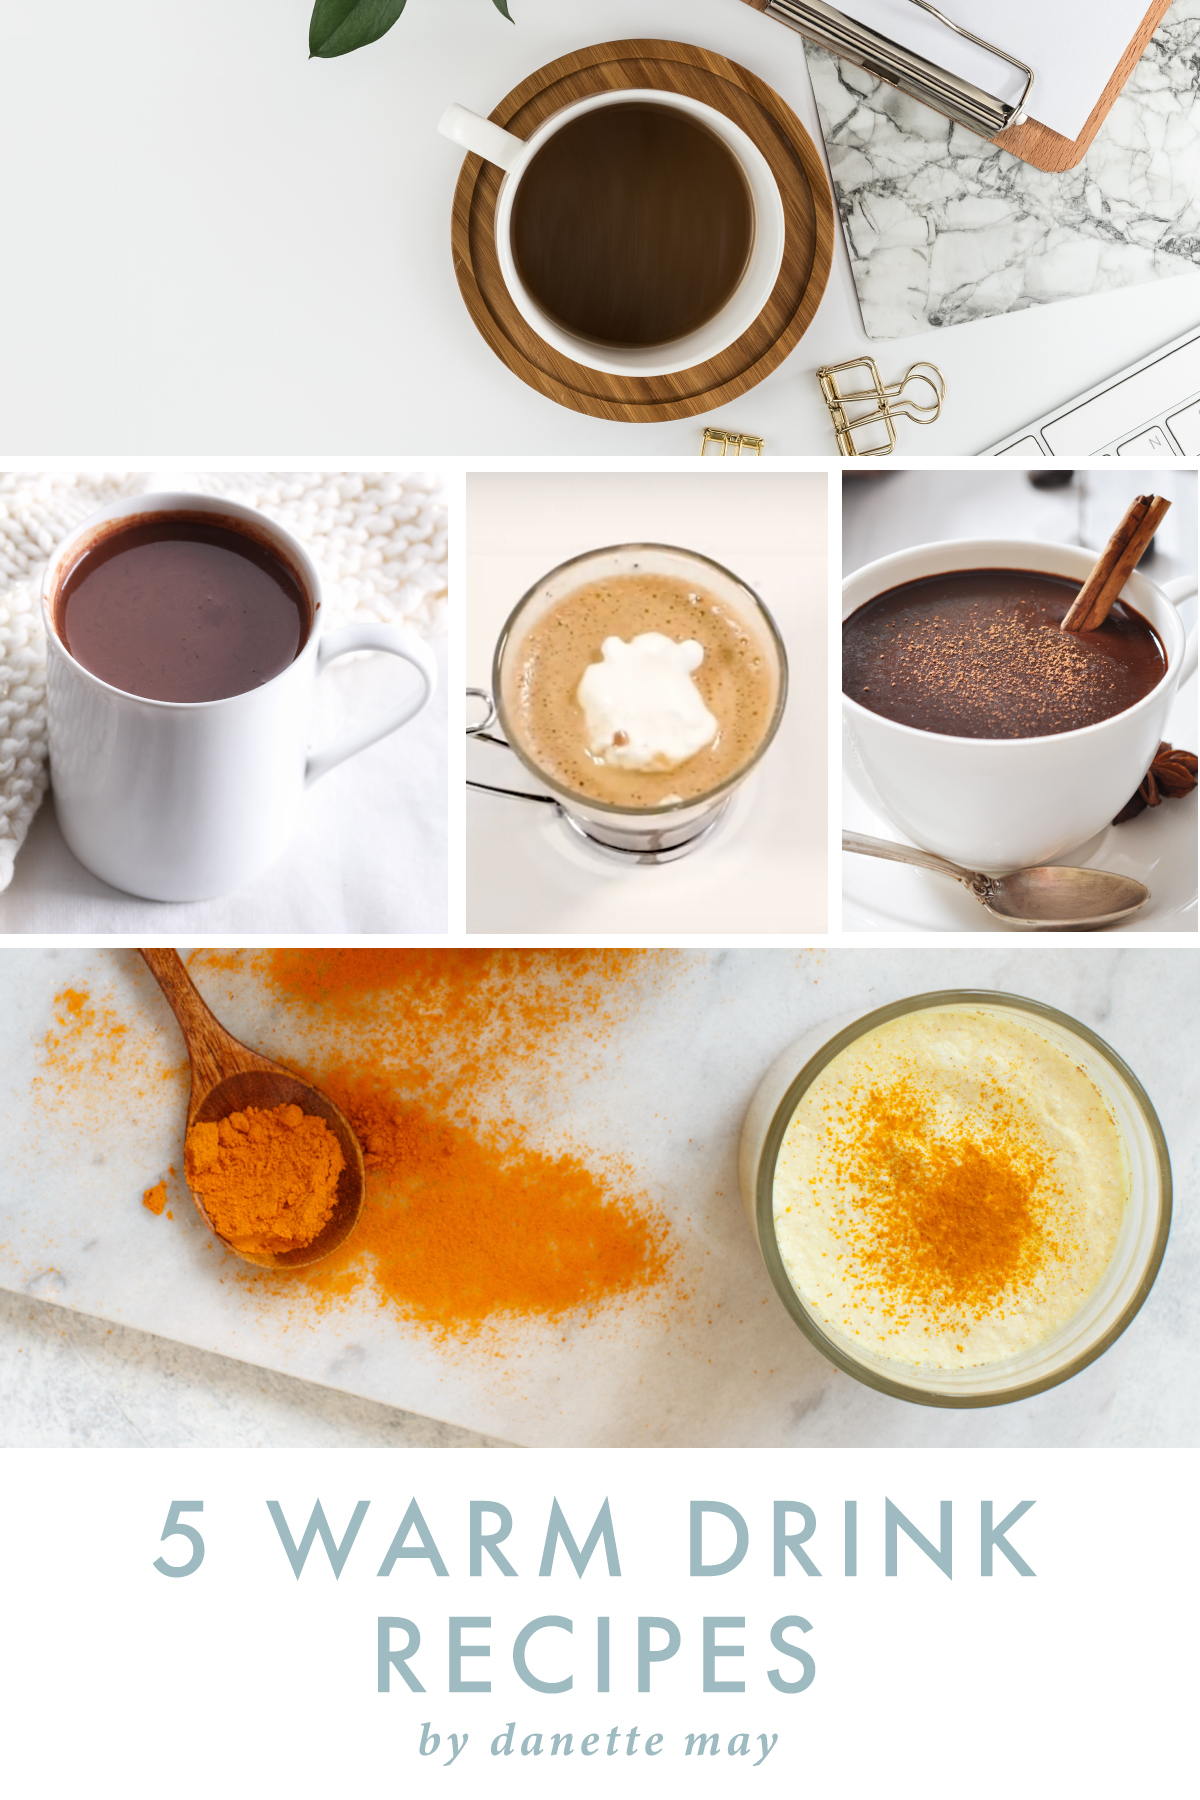 5 Warm Drinks by Danette May